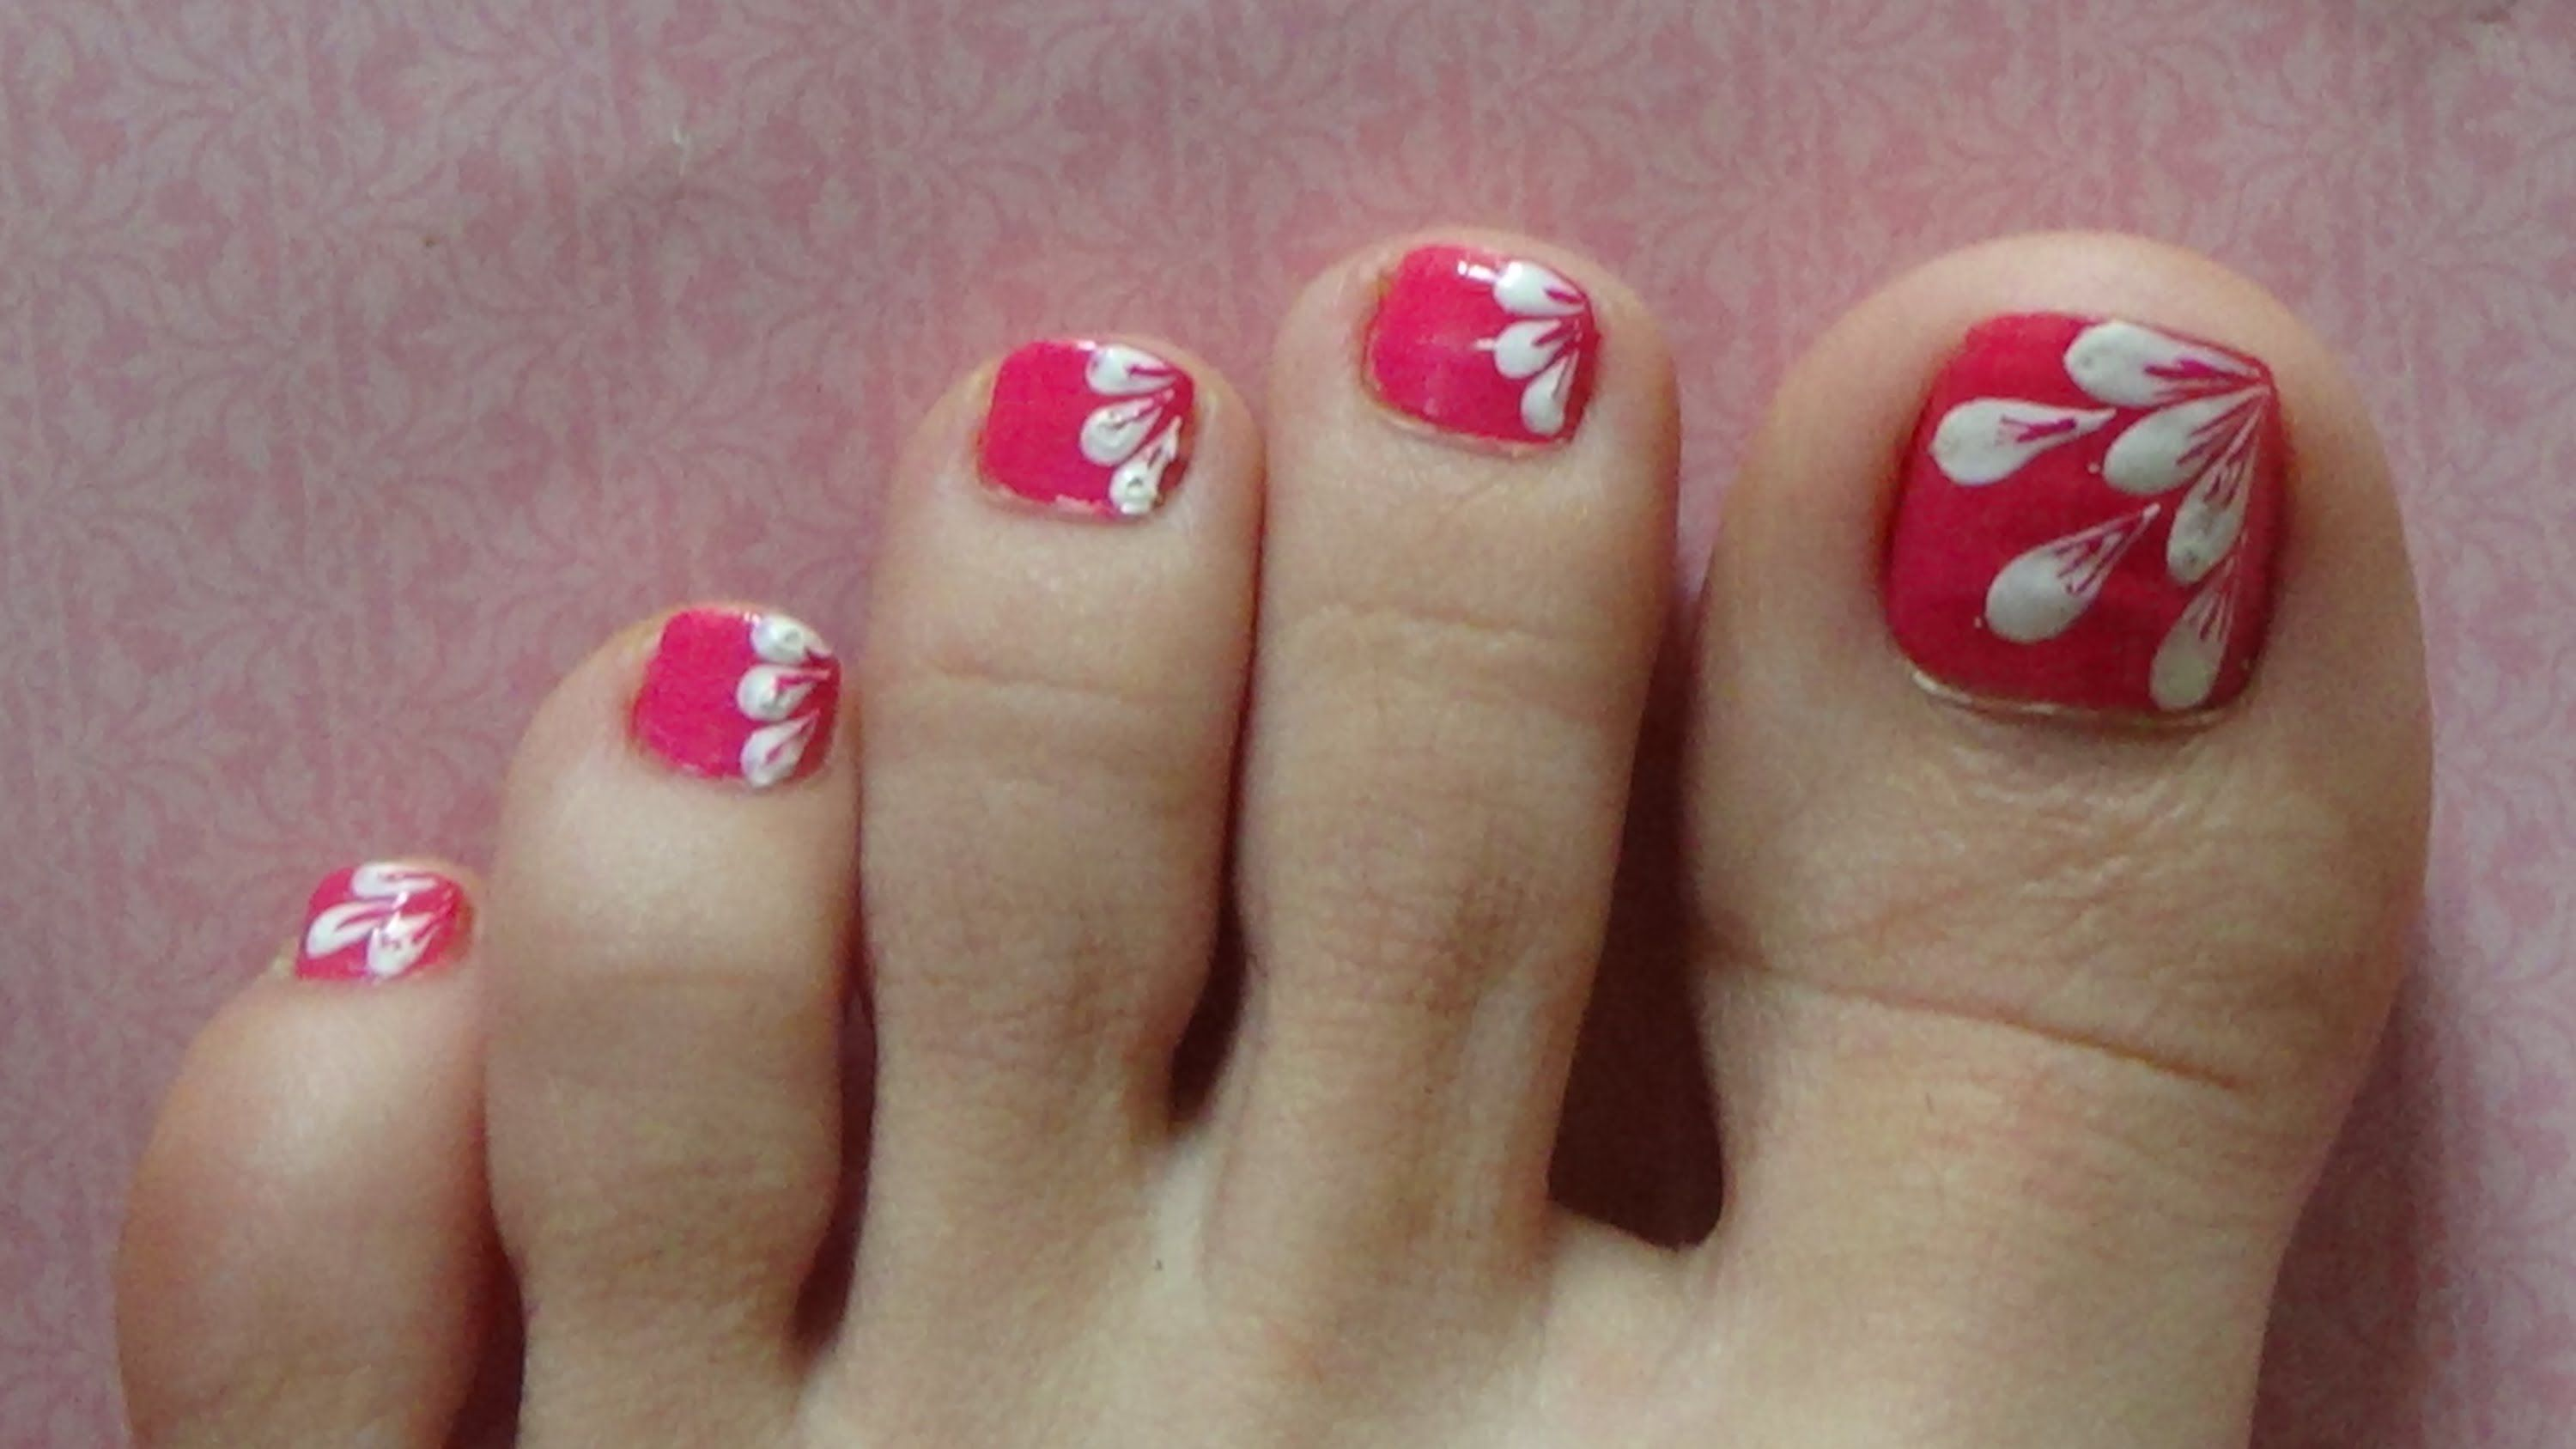 White flower petals easy design for toe nails nails with a hair white flower petals easy design for toe nails nails with a hair prinsesfo Image collections